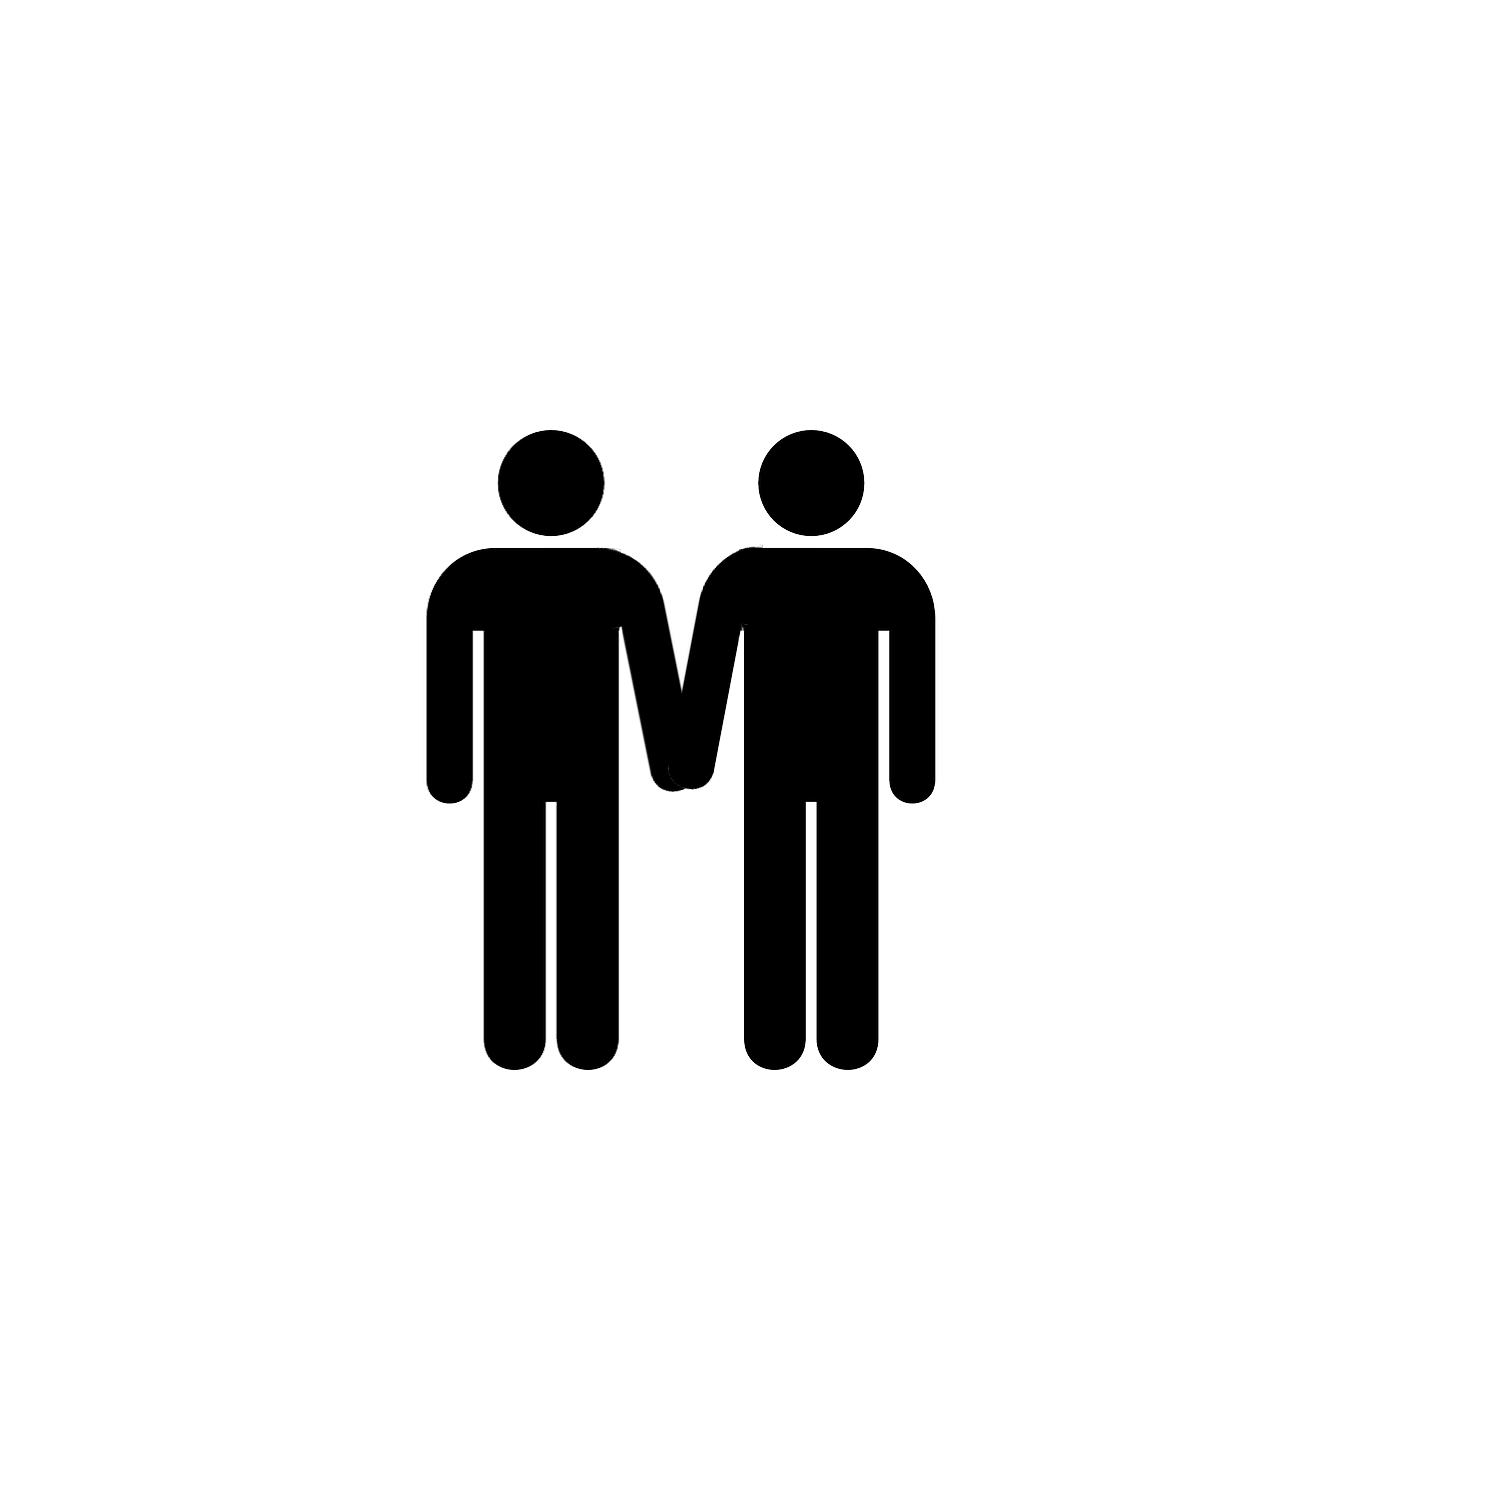 male bathroom sign holding hands